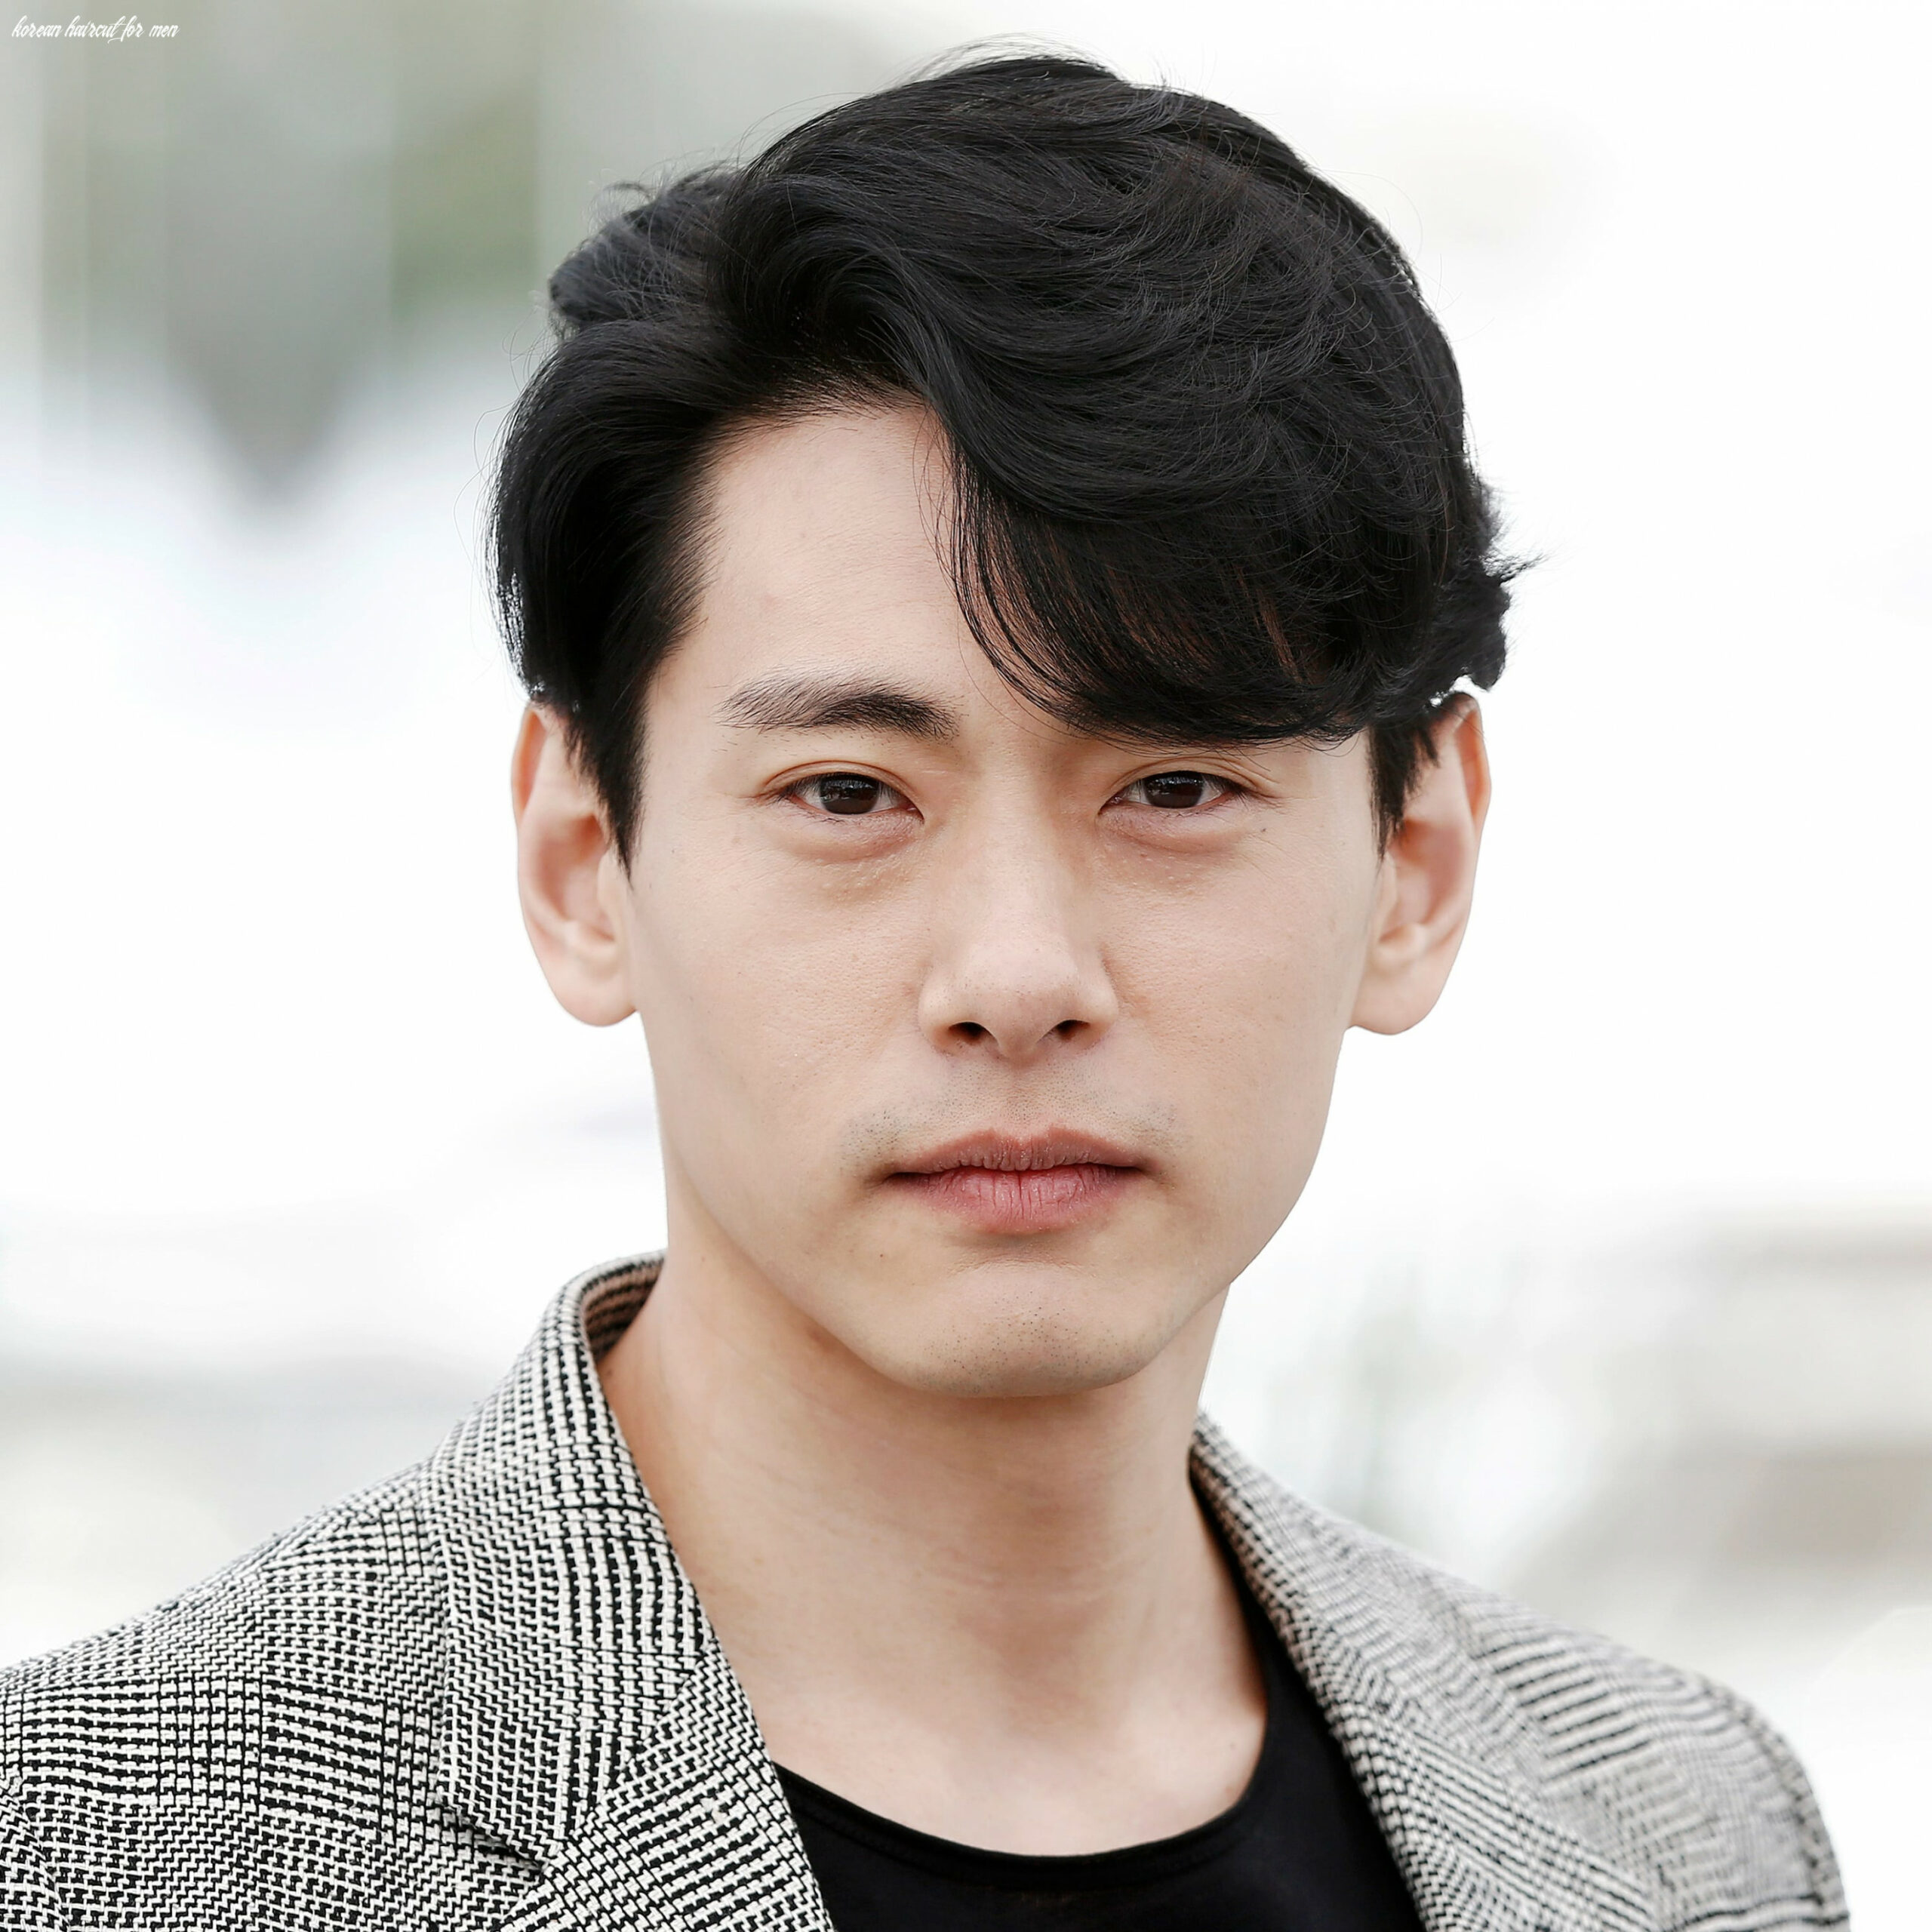 The 10 Best Asian Men's Hairstyles for 1010 - The Modest Man